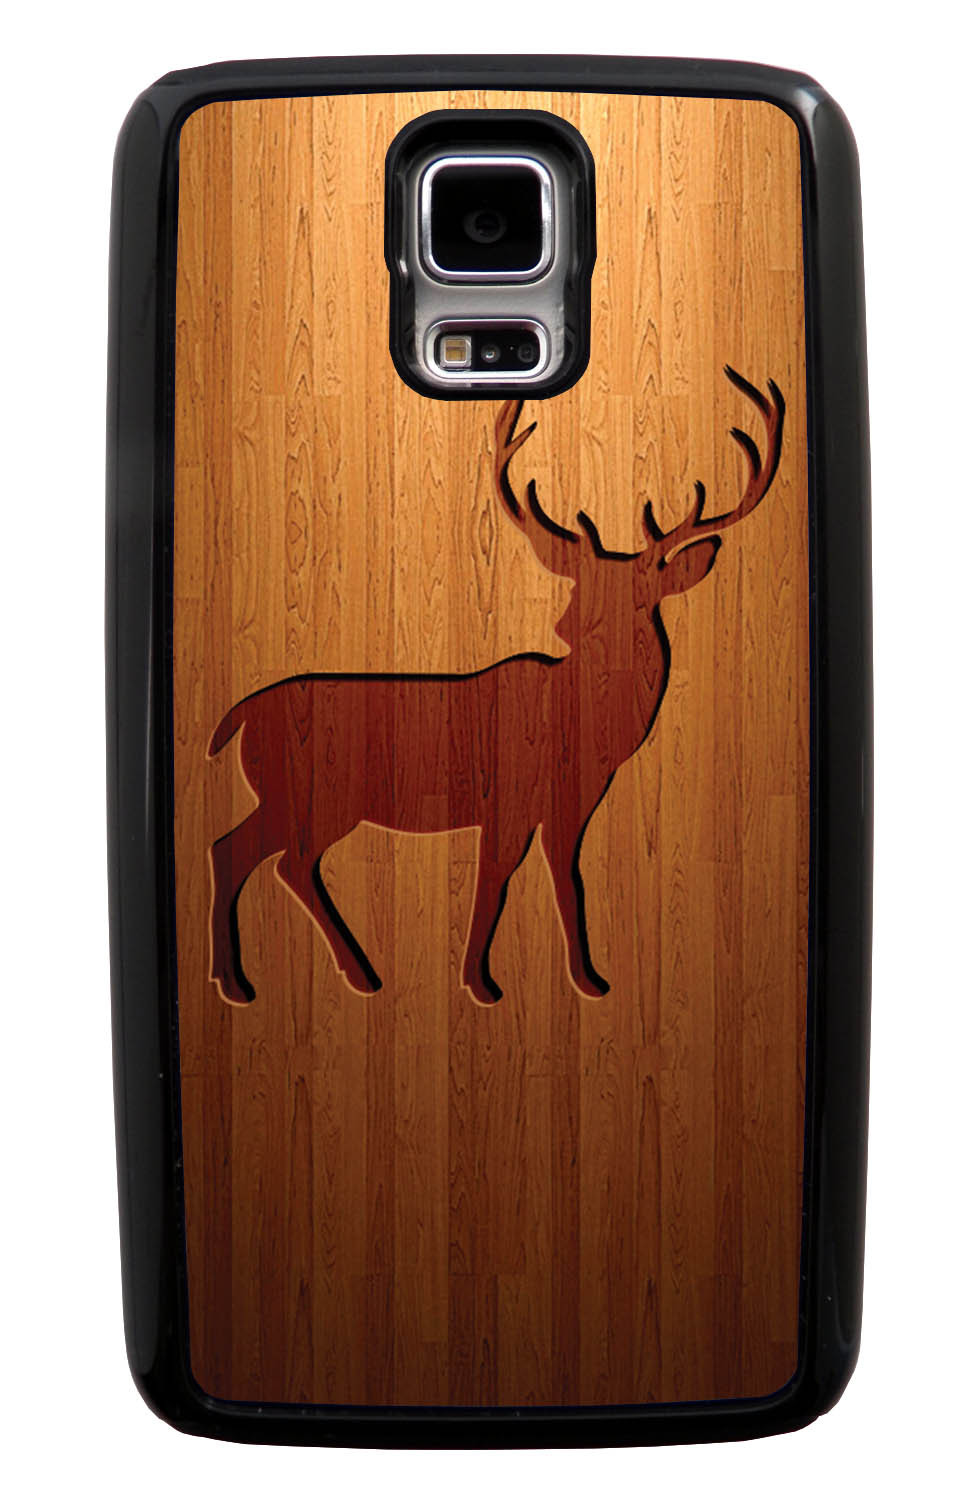 Samsung Galaxy S5 / SV Deer Case - Simulated Wood Engraving